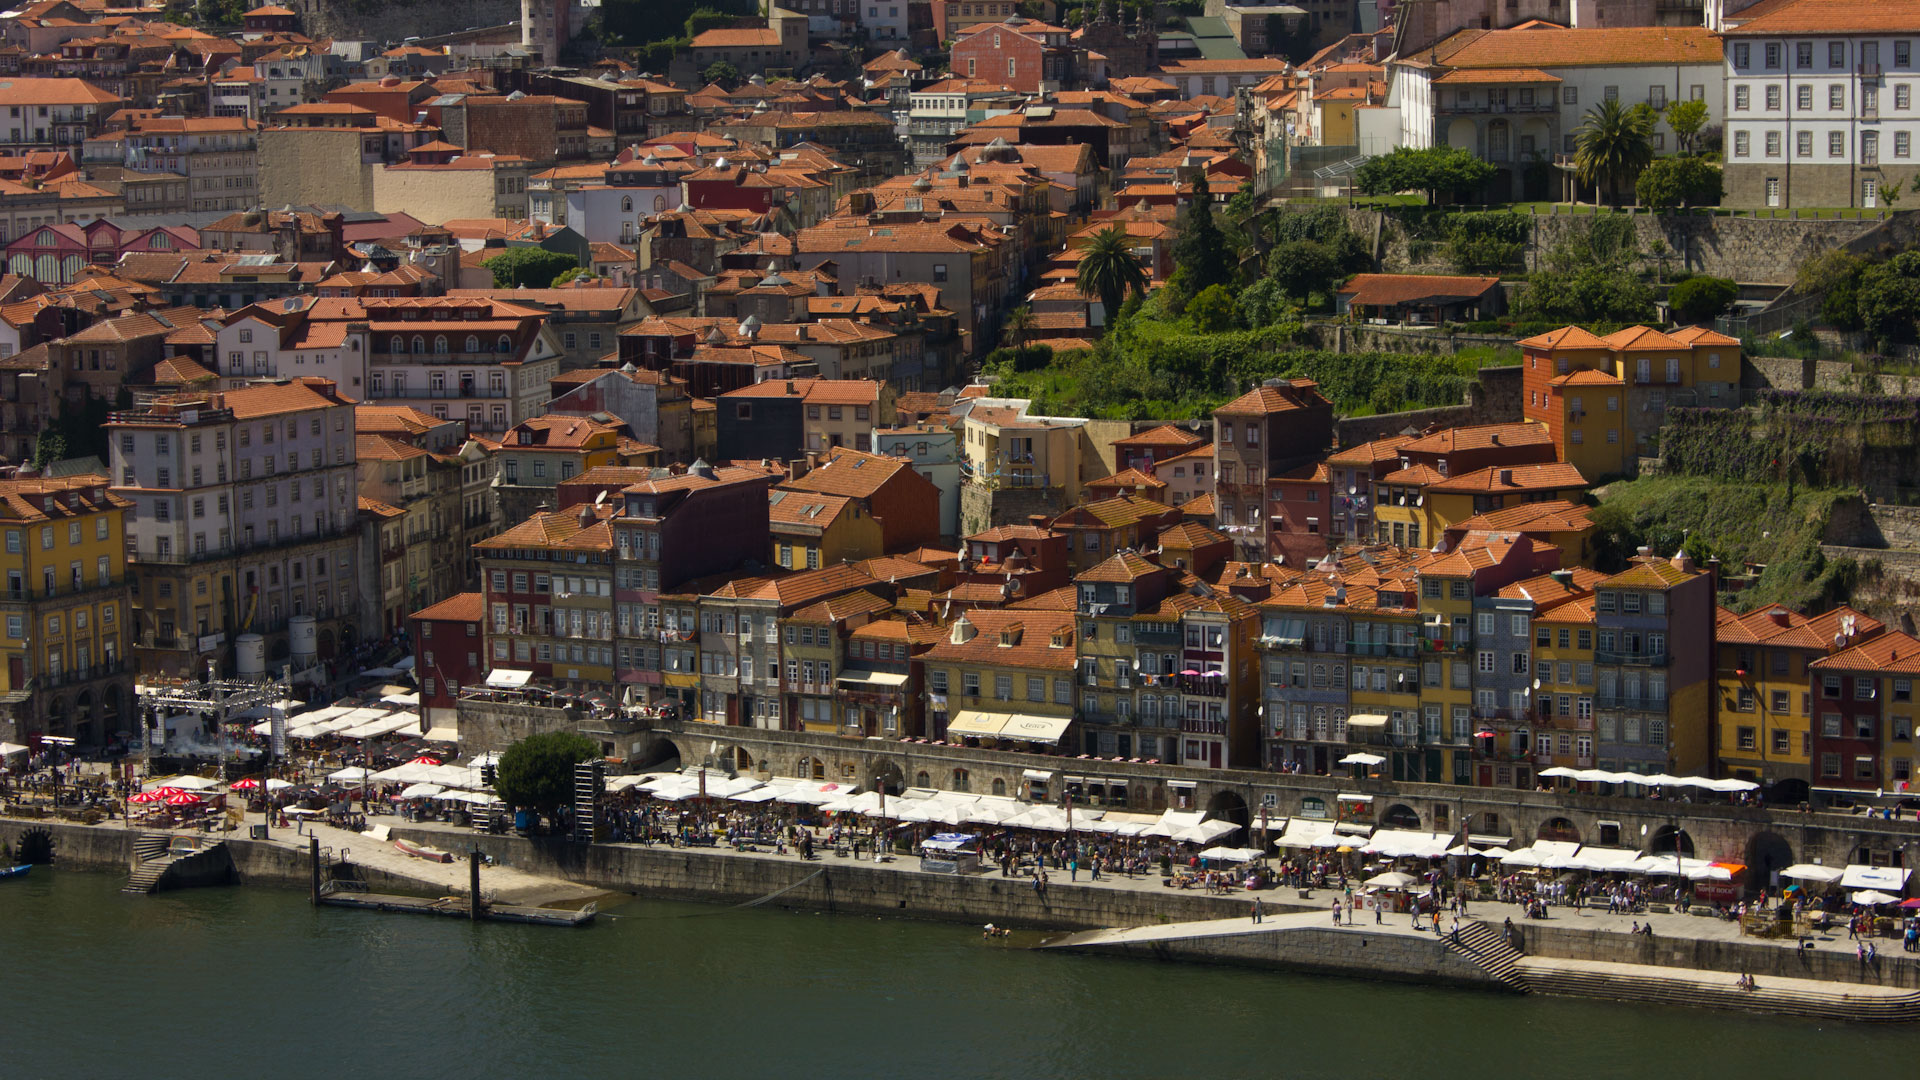 Porto's Ribeira and seafood restaurants